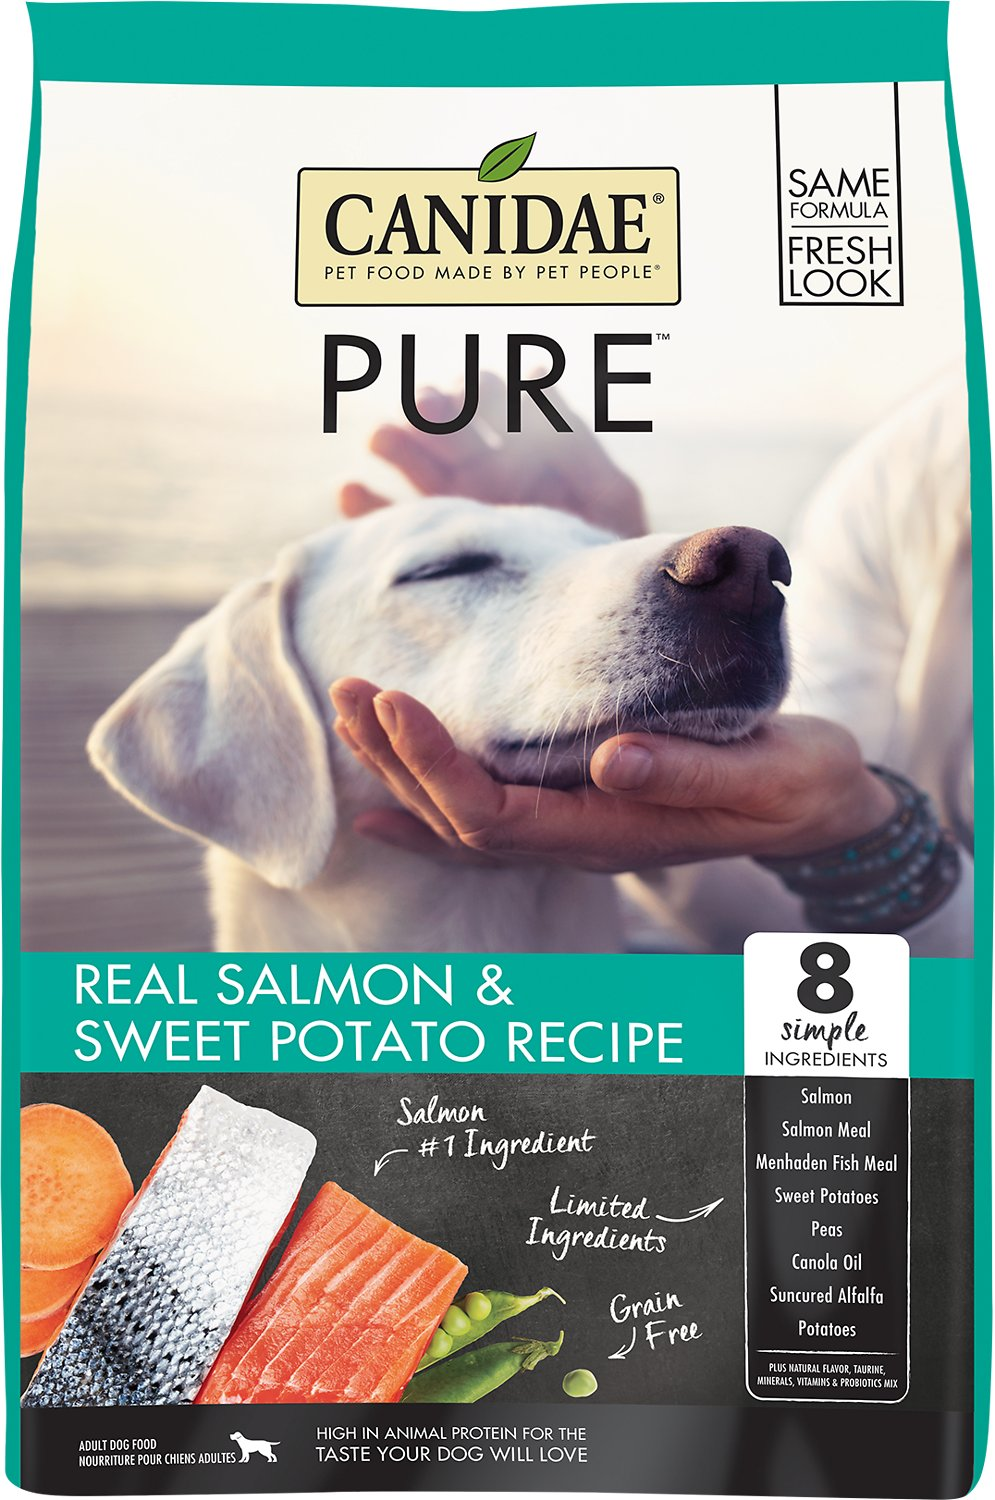 Canidae Grain-Free PURE Real Salmon & Sweet Potato Recipe Dry Dog Food Image